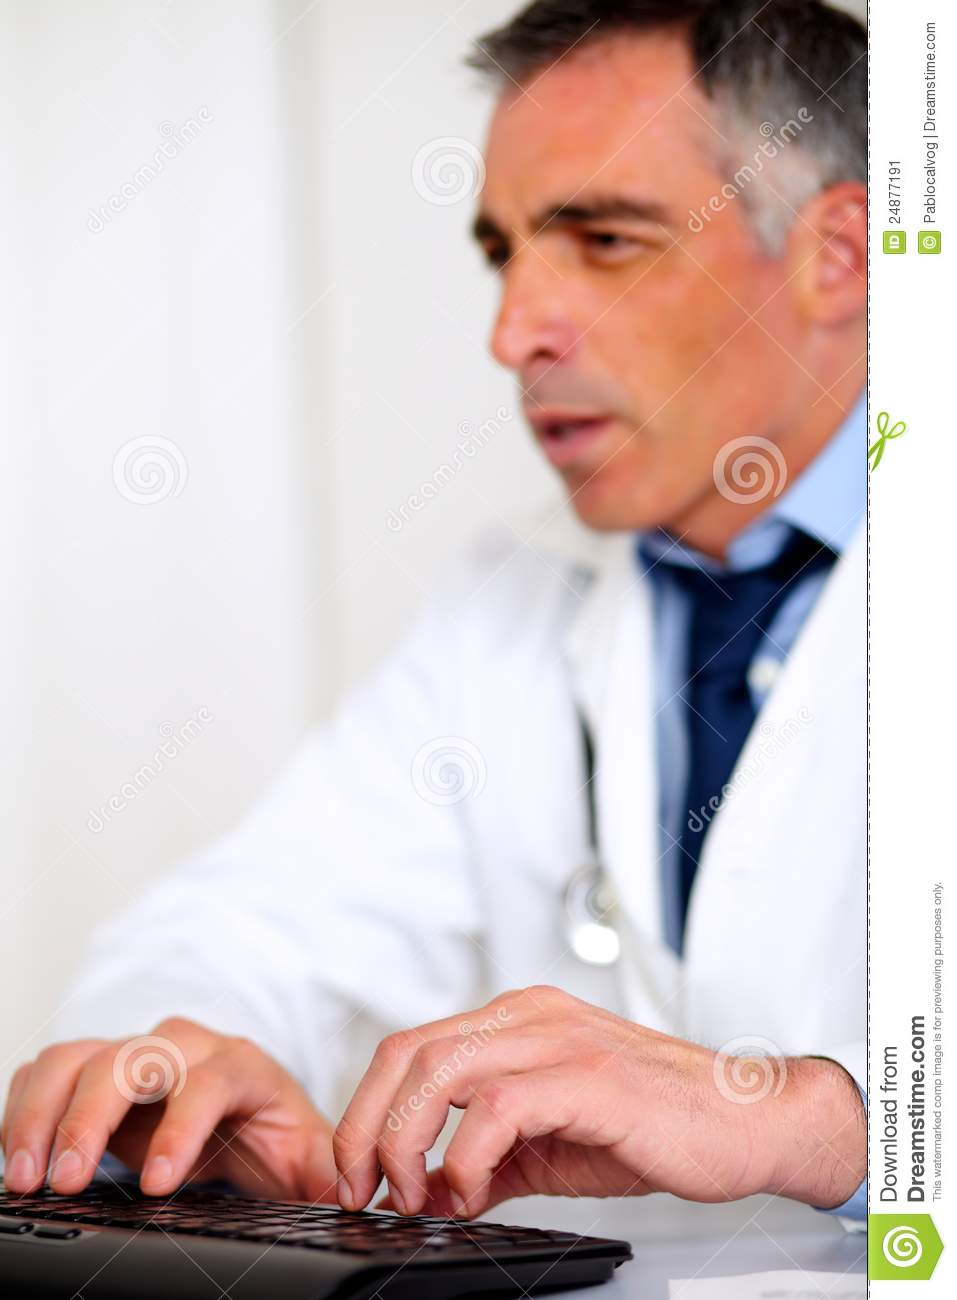 how to become a medical specialist